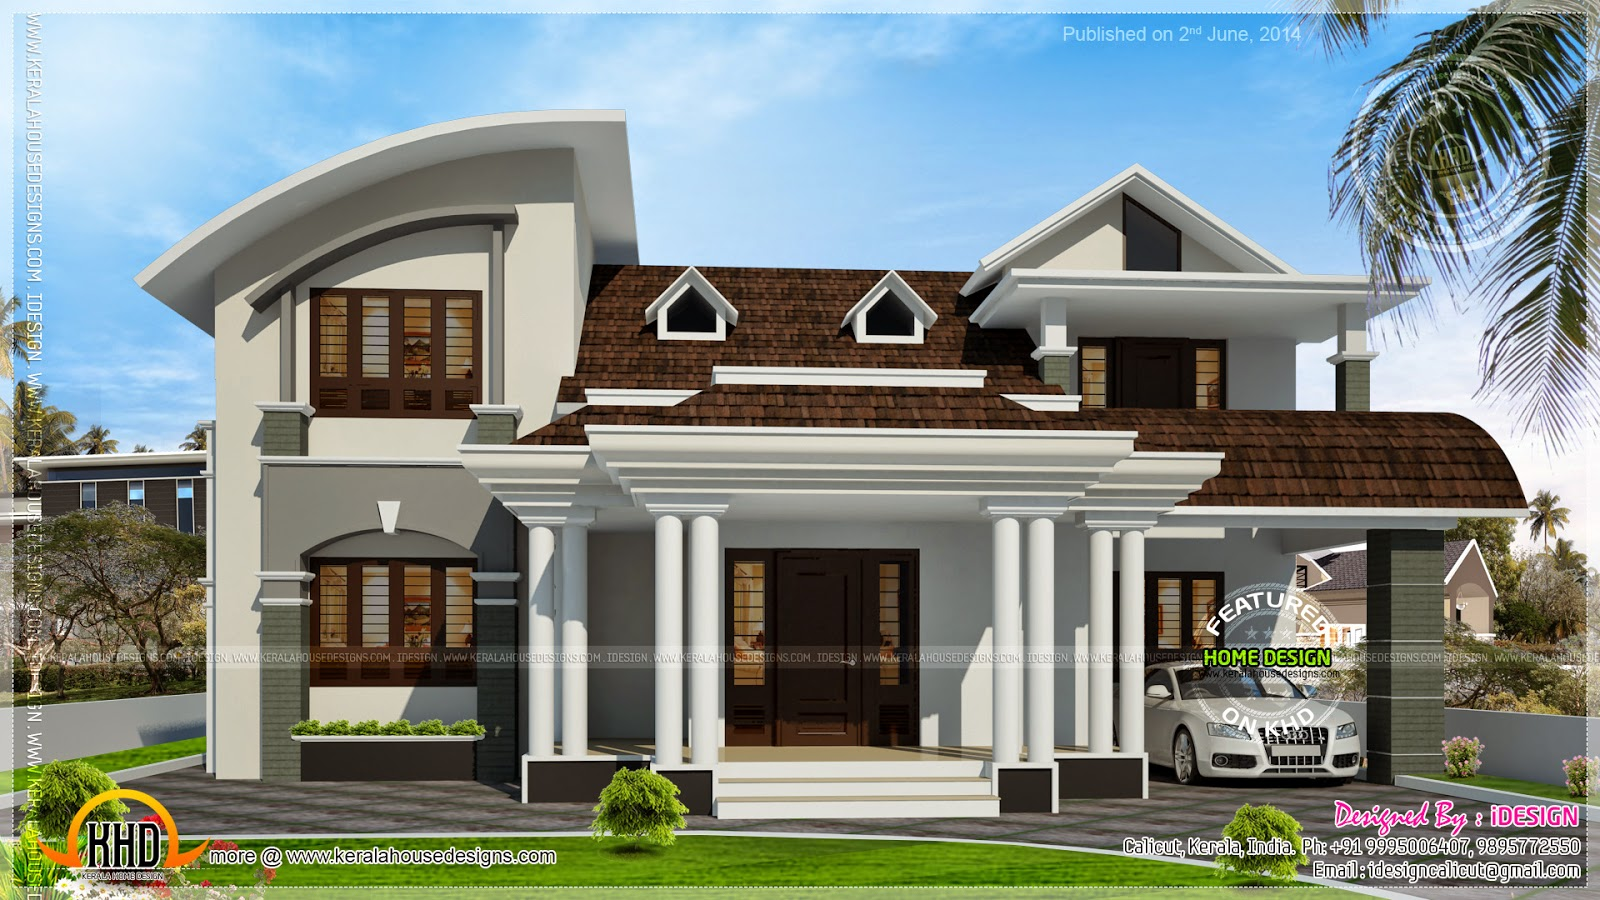 Siddu buzz online kerala home design for Colonial style home design in kerala